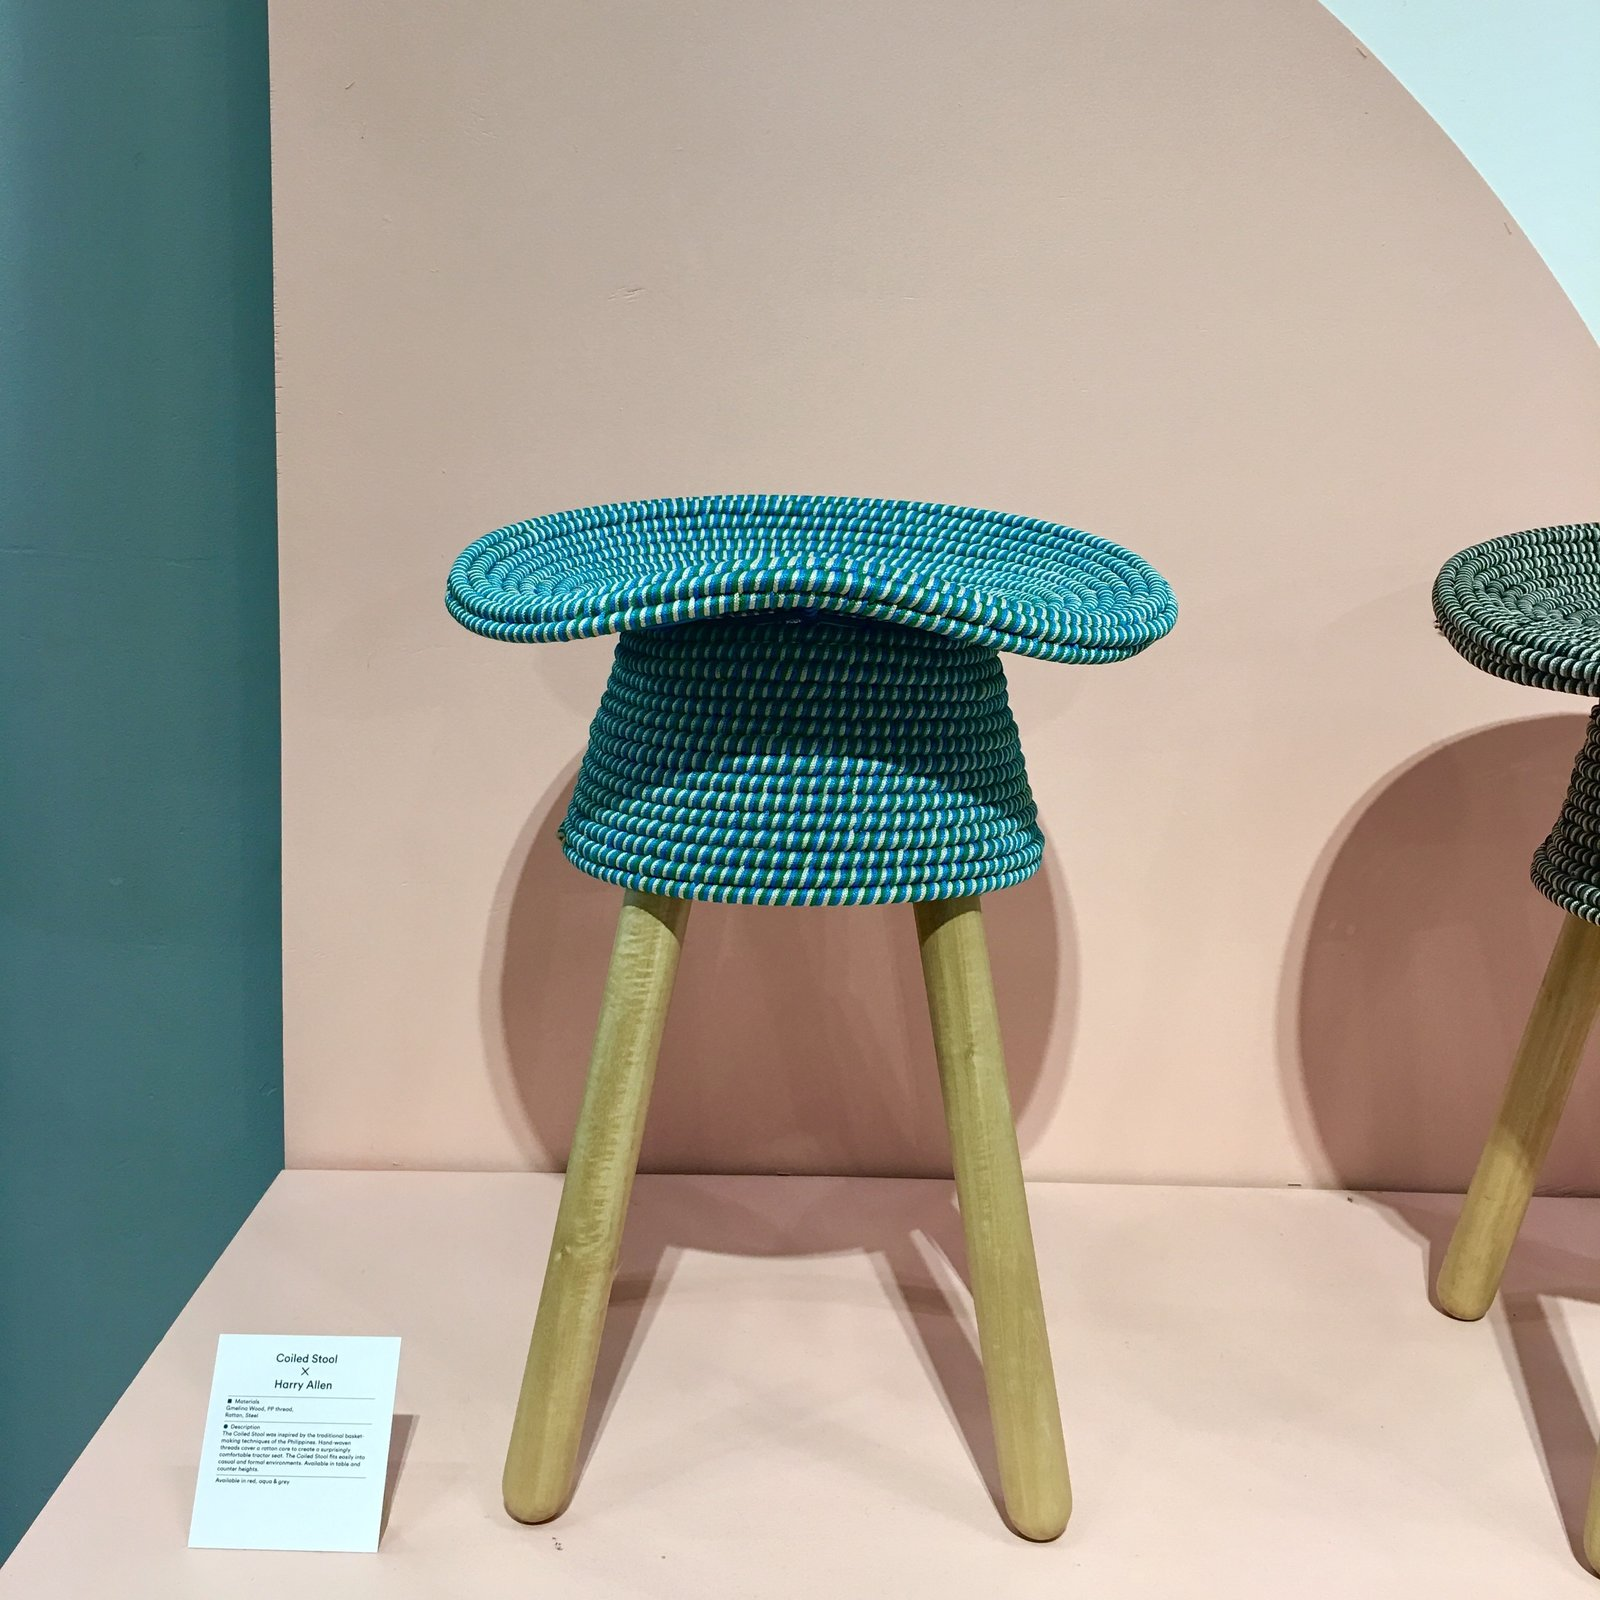 Umbra Shift presented a Coil stool designed by Harry Allen that's inspired by traditional basketweaving found in the Philippines.  Photo 3 of 36 in The Best of New York Design Week 2017